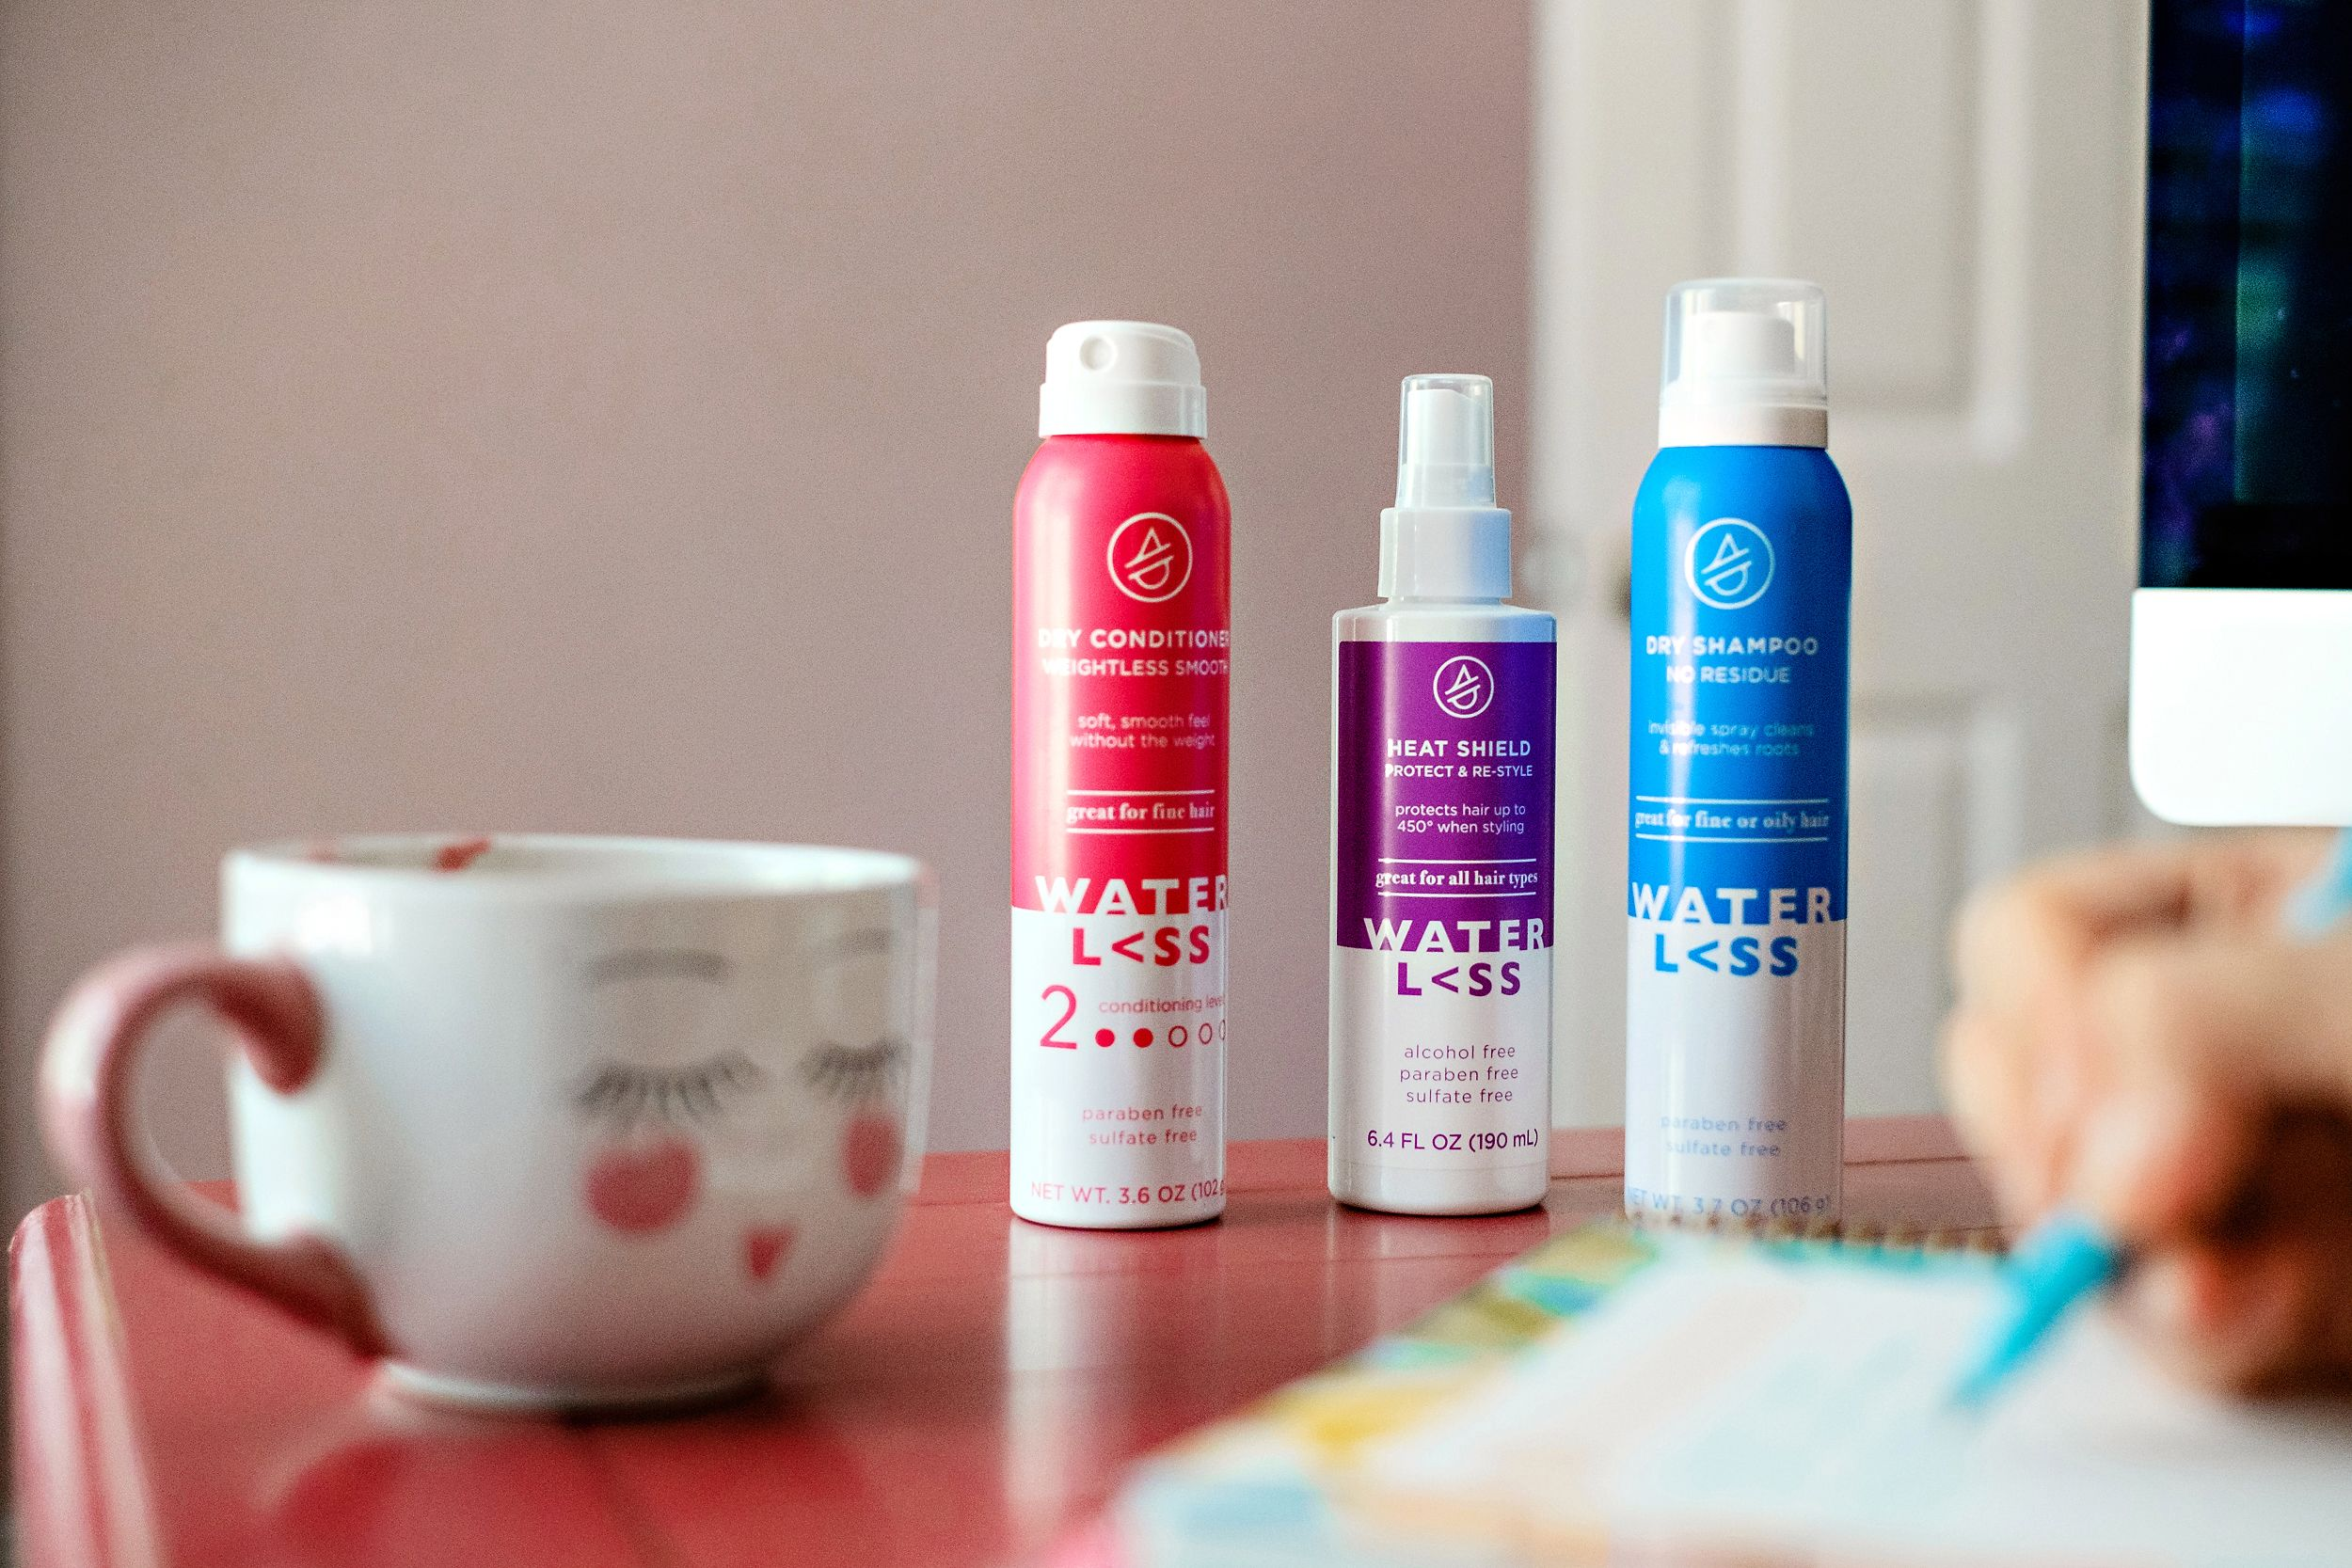 Curious how to get 5 days between washes? Popular Atlanta Blogger Happily Hughes is sharing her top tips to getting 5 day hair with waterl<ss HERE!